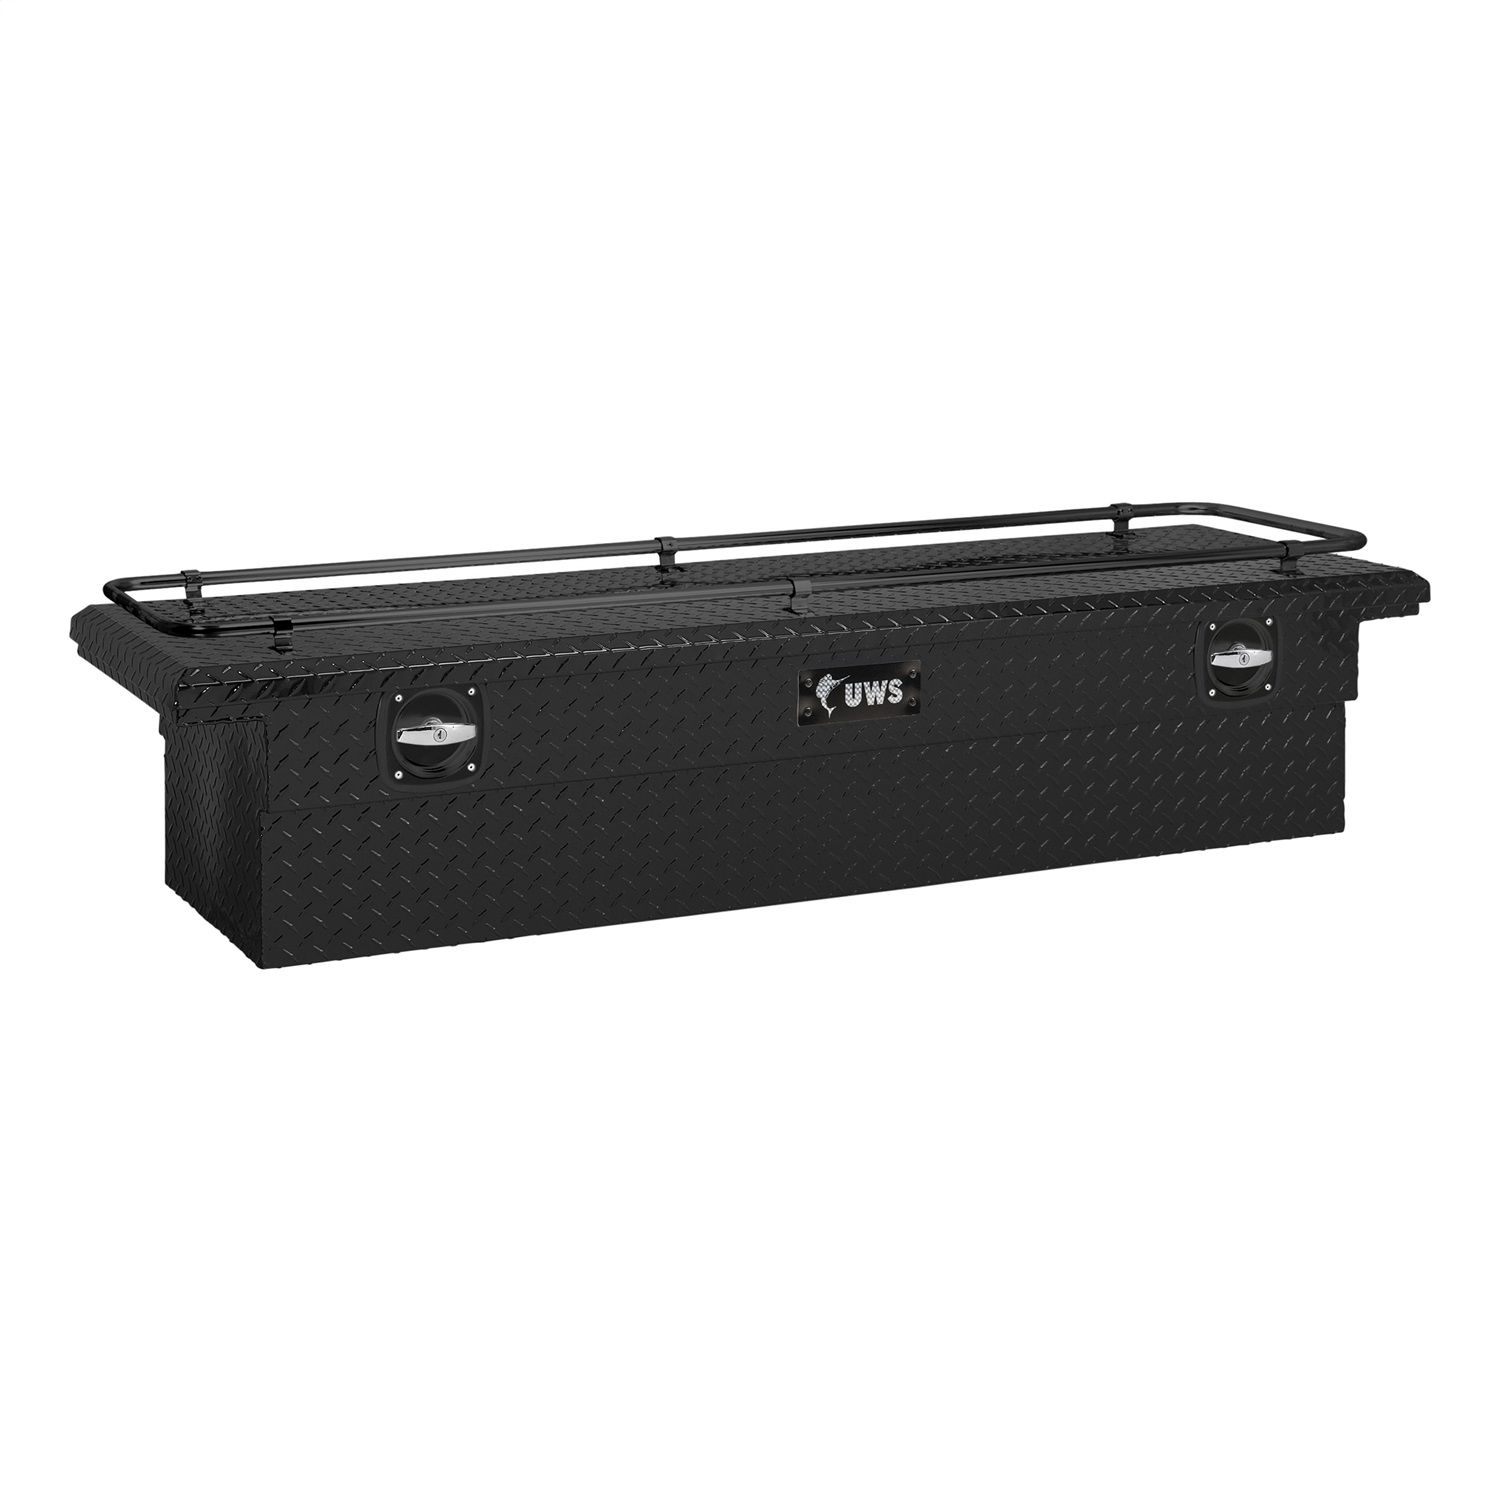 72 in. Secure Lock Single Lid Low Profile Tool Box, Crossover, w/Rail, Matte Black